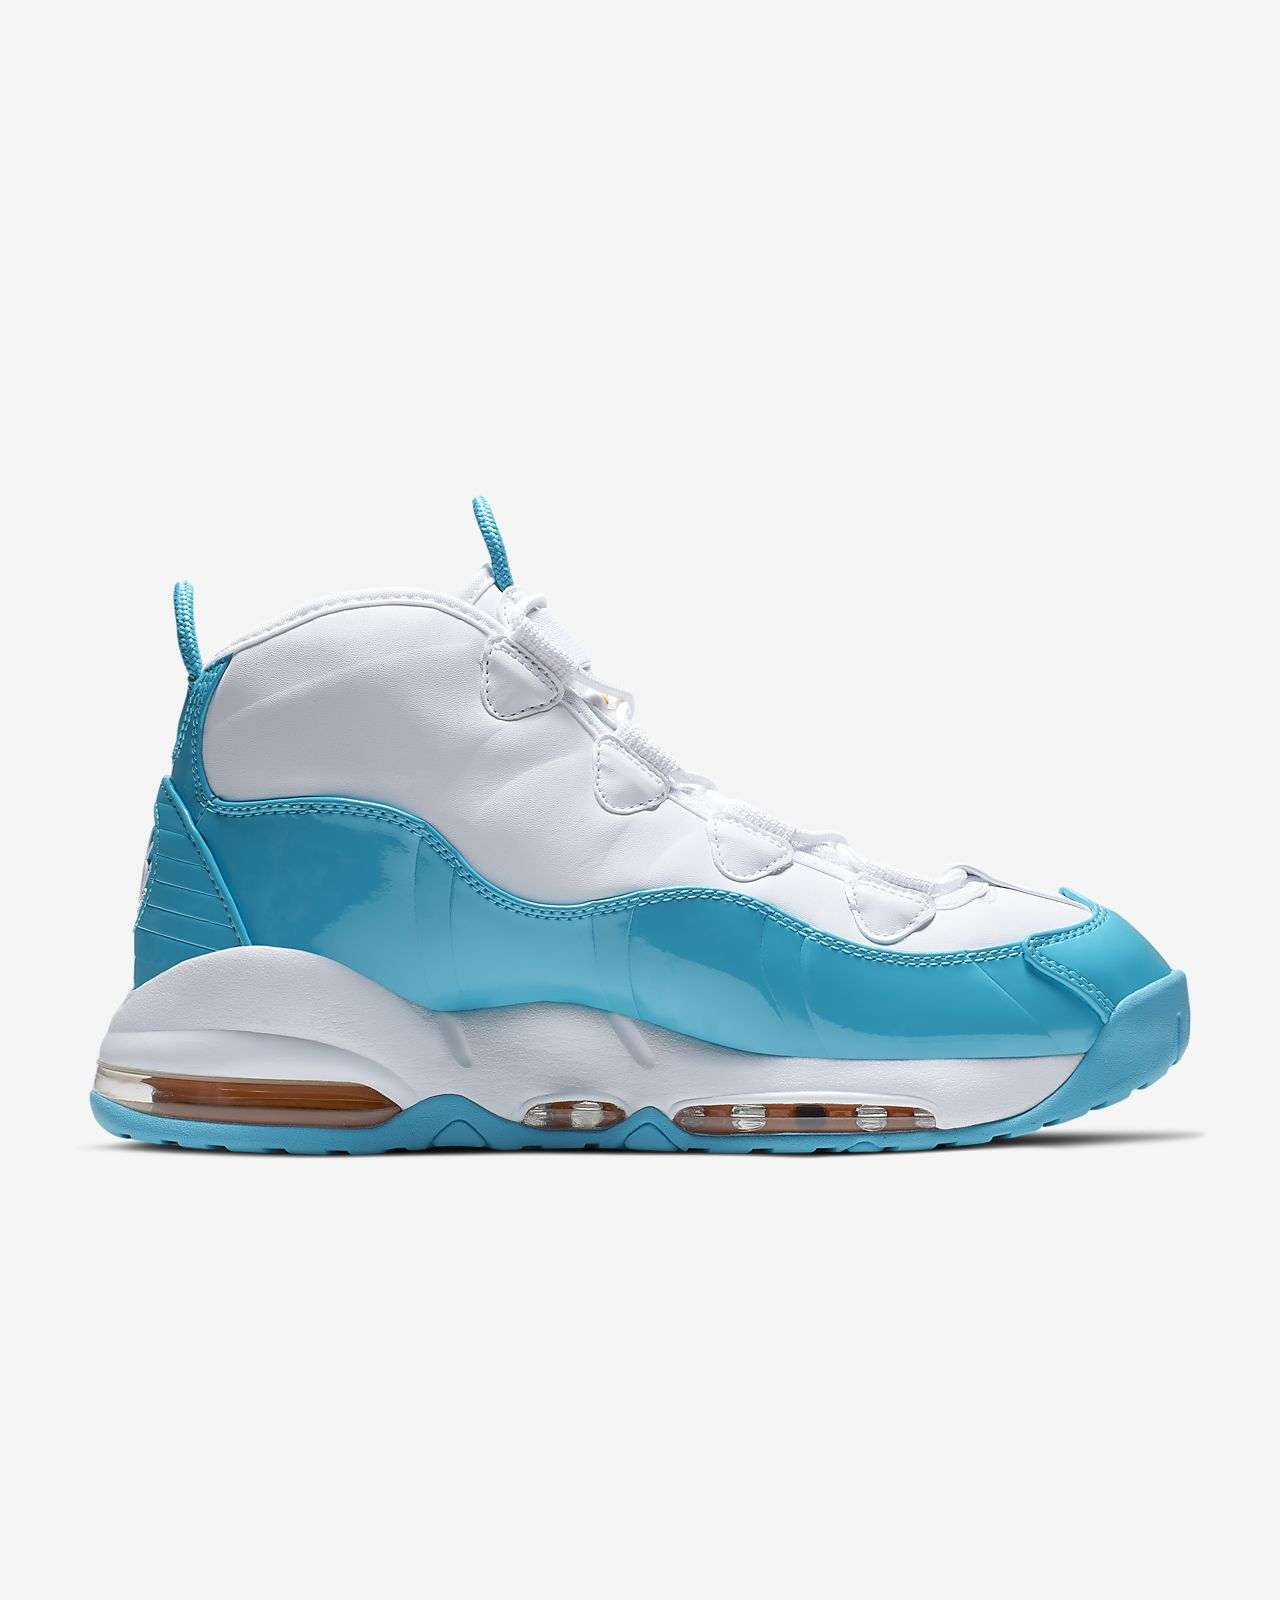 Nike Air Max Uptempo 95 Mens White Shoes UK